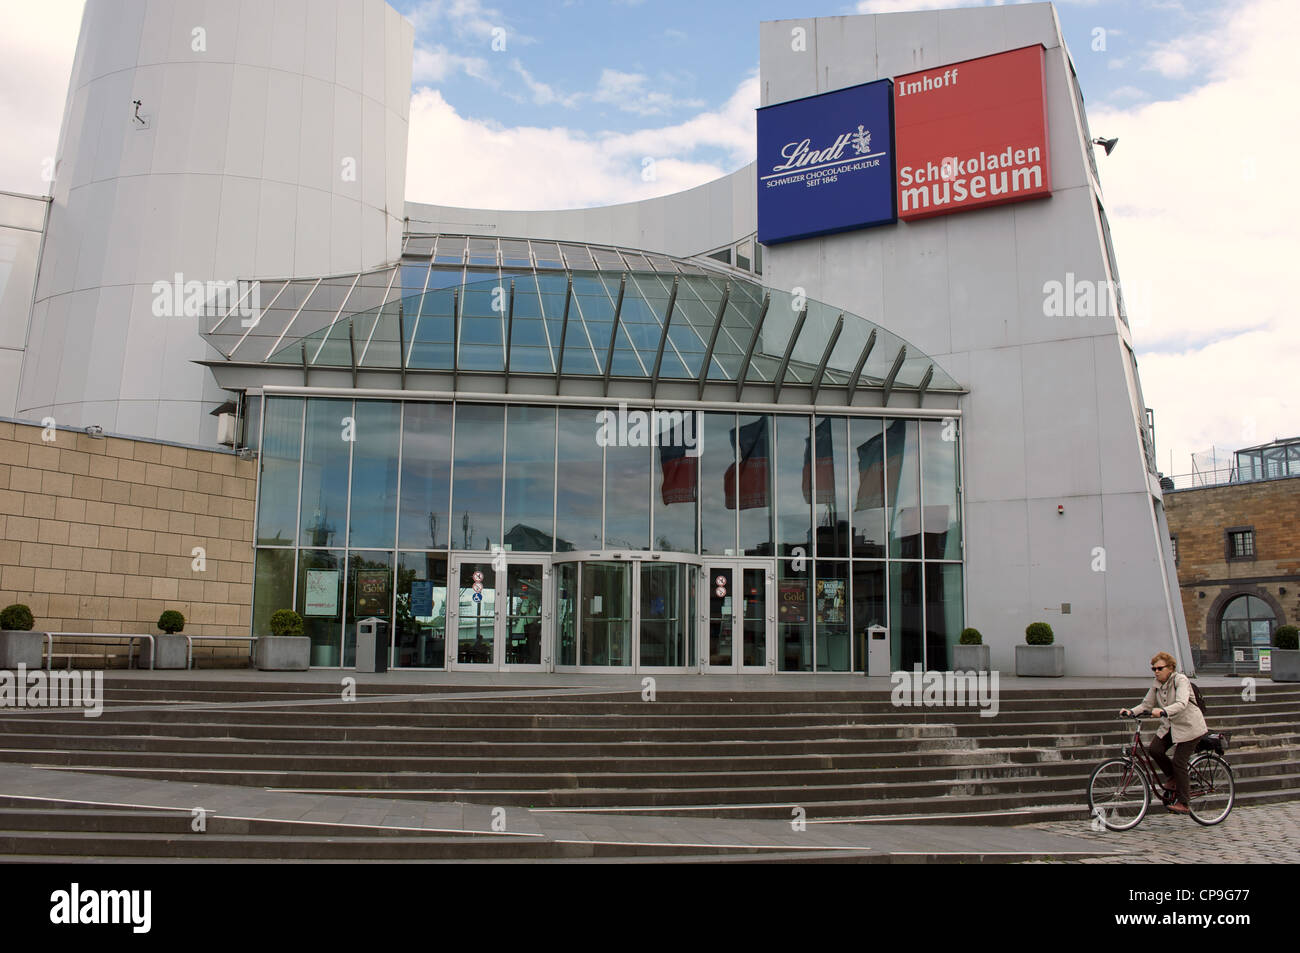 Chocolate Museum Cologne Germany Stock Photo 48153483 Alamy